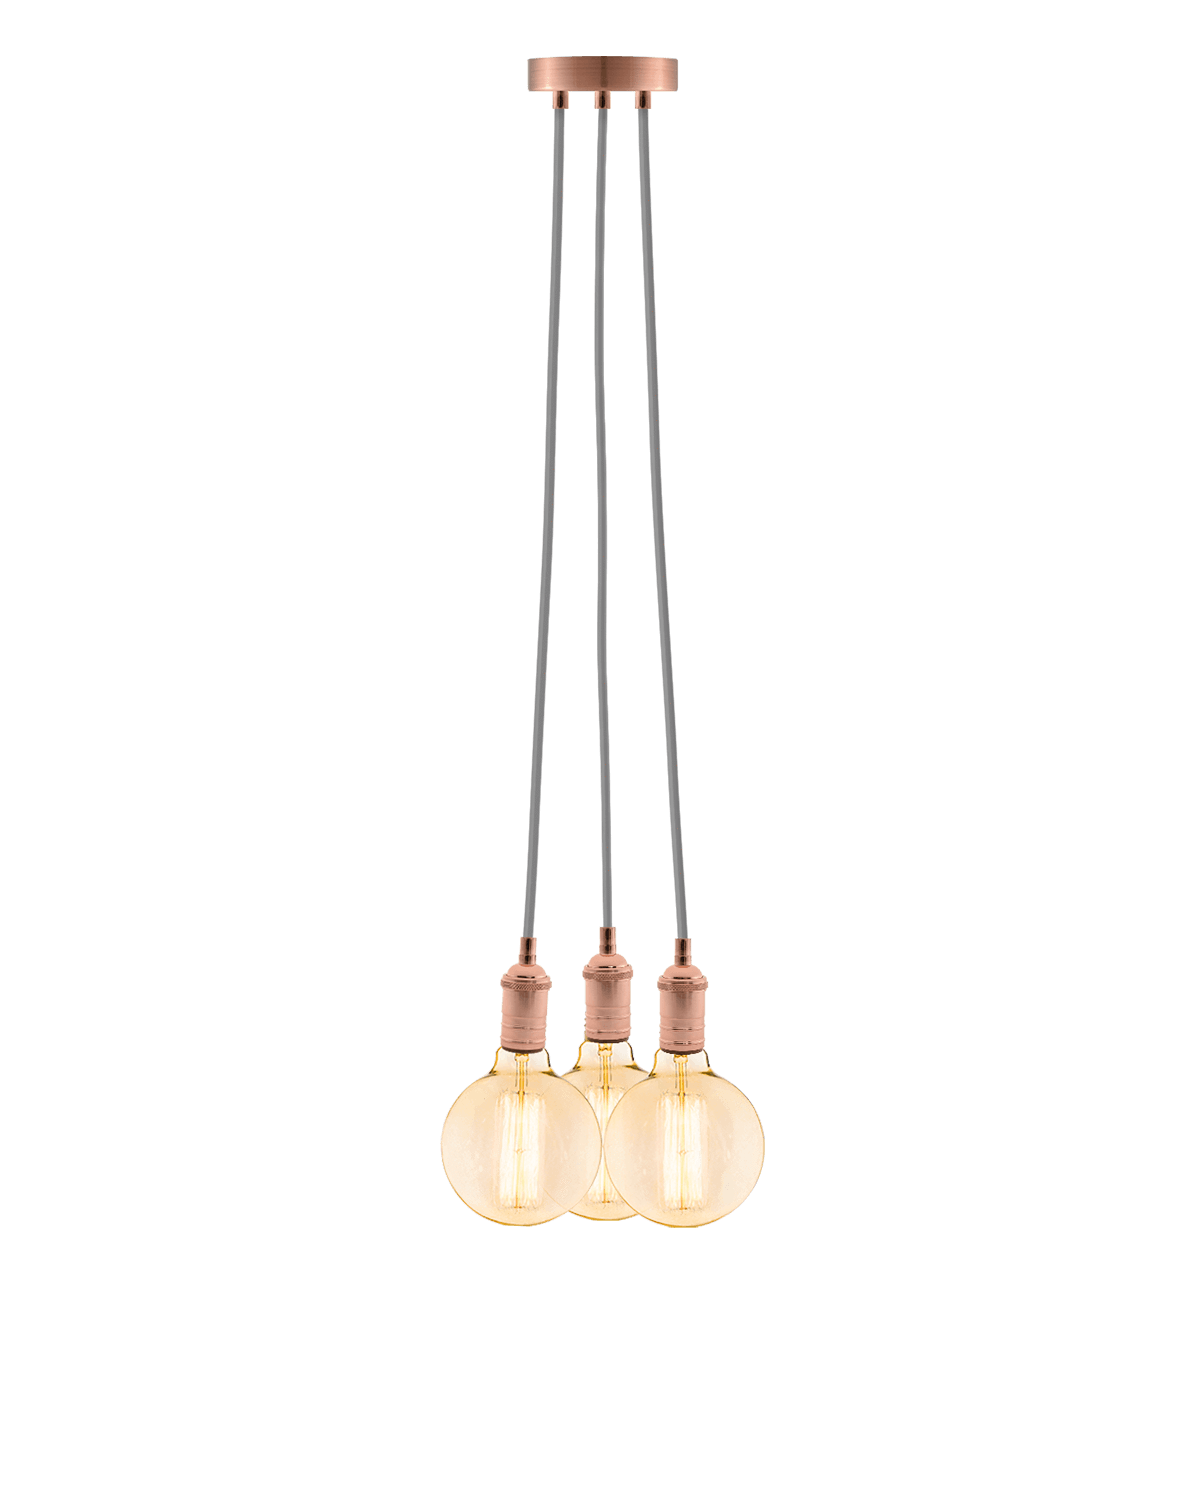 Cluster Chandelier - Even: Grey and Copper Hangout Lighting 3 Even